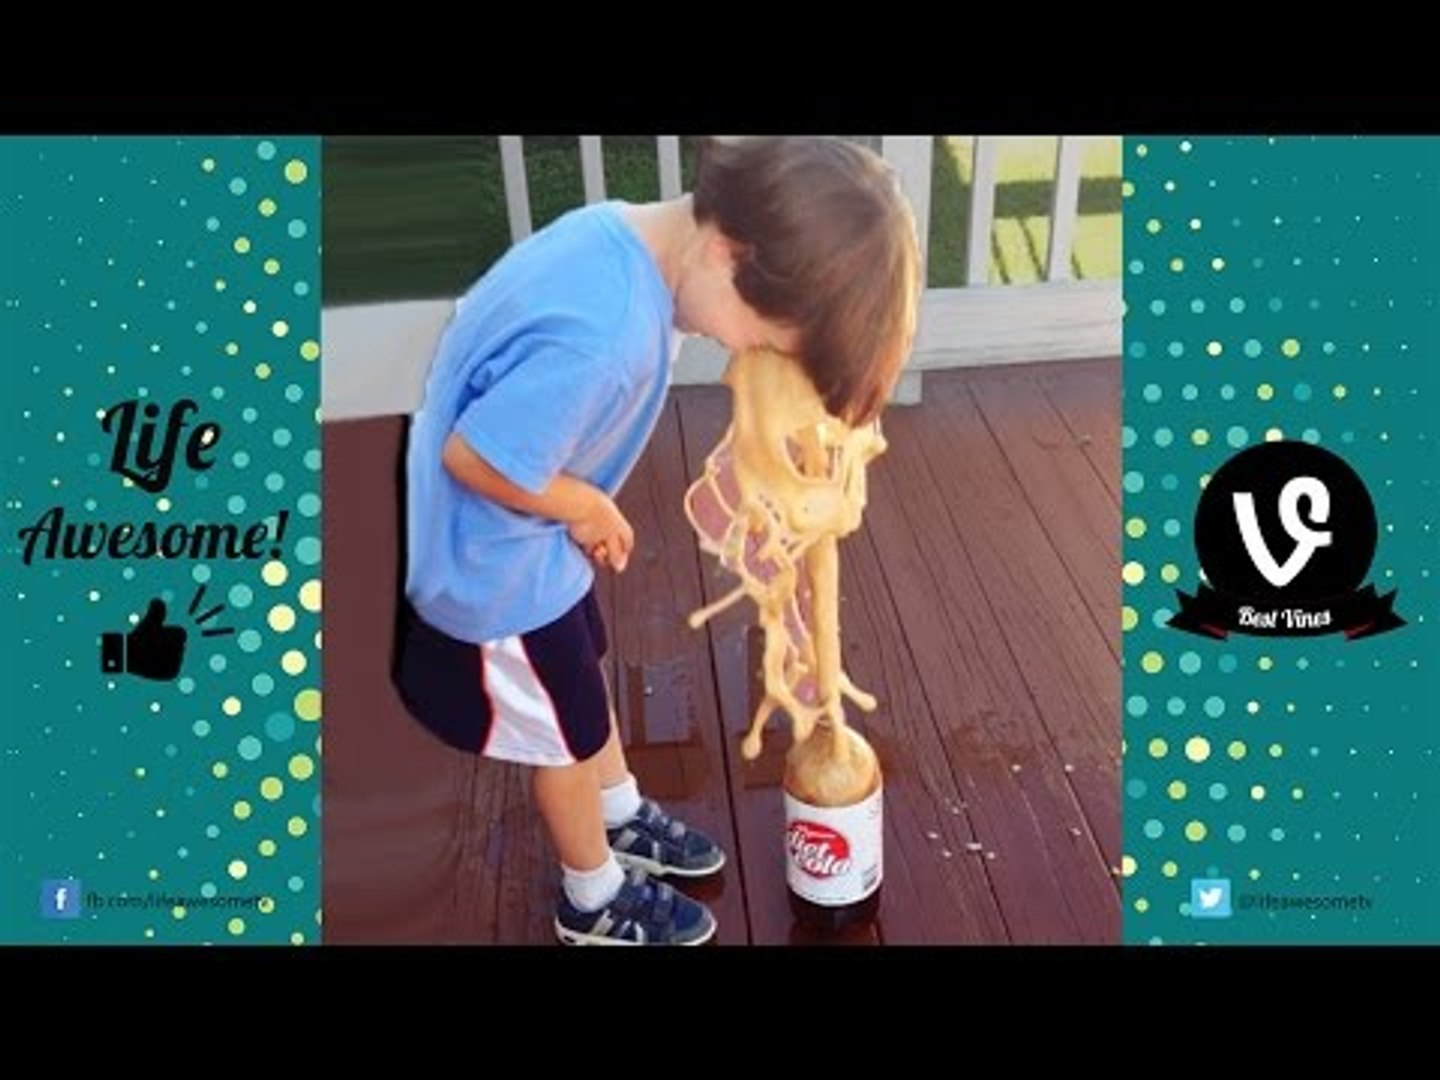 TRY NOT TO LAUGH - Funny Kids Vines Compilation 2016 | Funniest Kids Videos - by Life Awesome